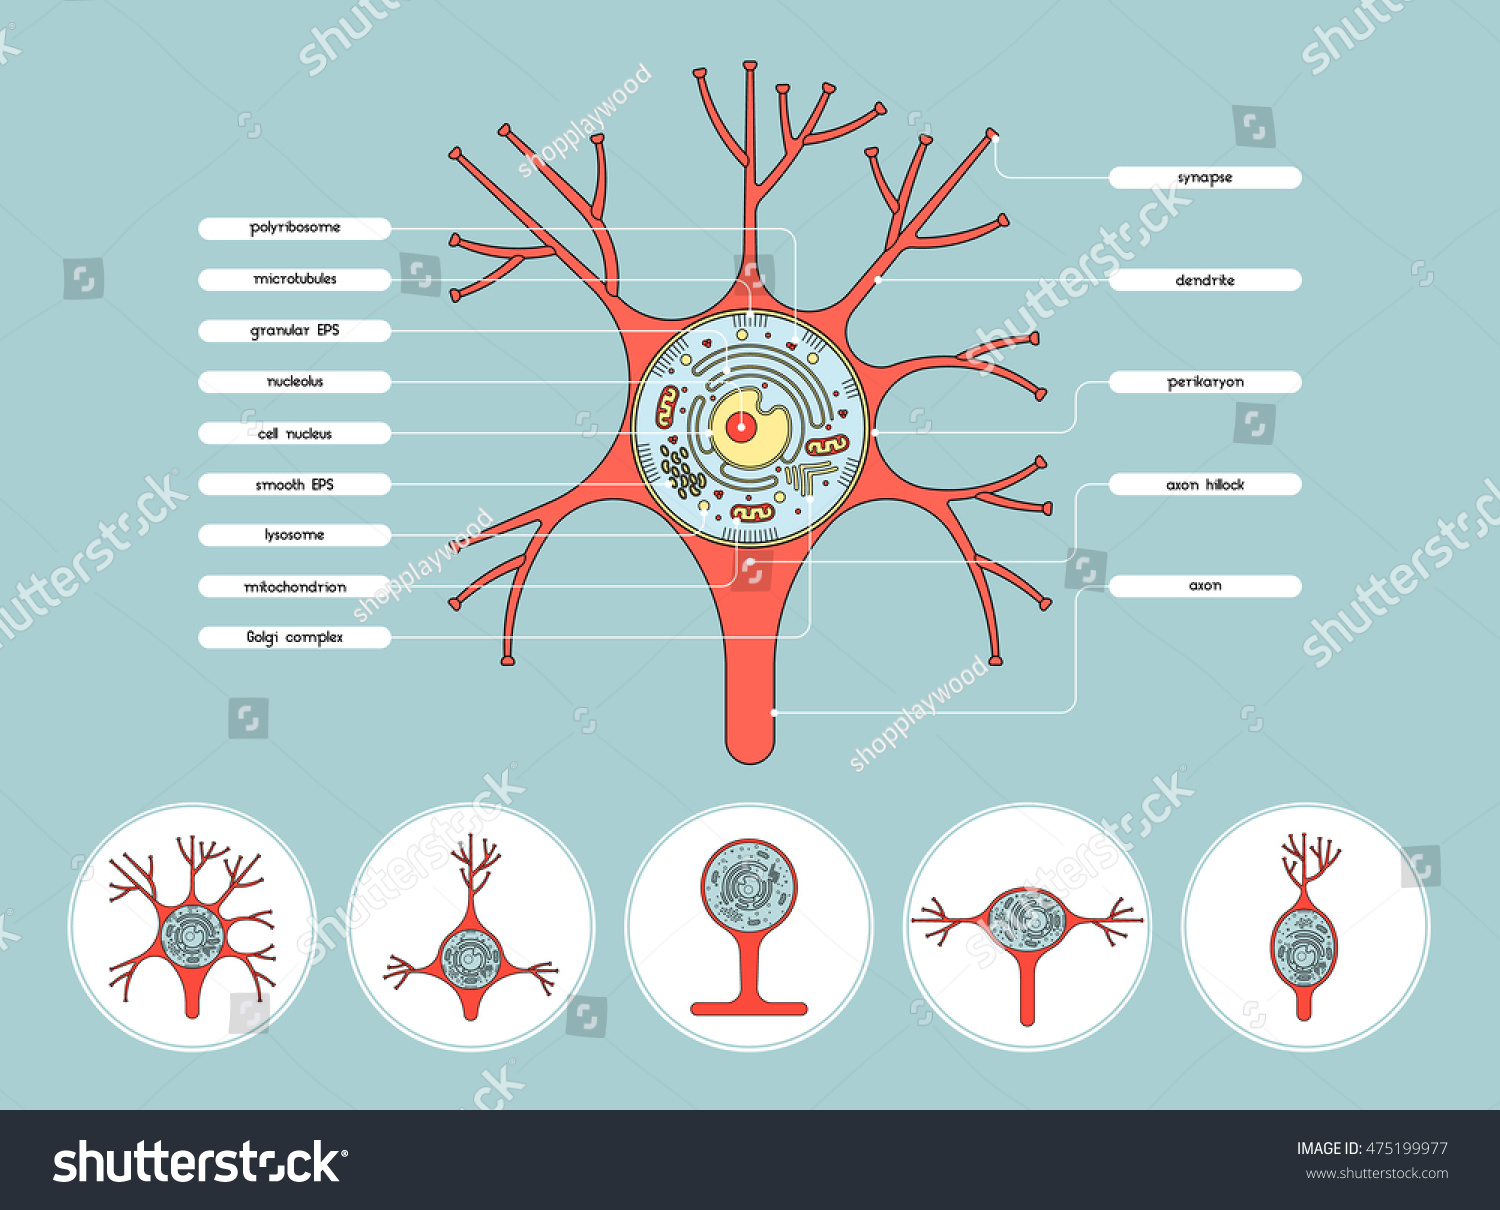 Isolated neurone cell biology diagram axon stock vector royalty isolated neurone cell biology diagram axon cell body anatomy structure vector illustration with description ccuart Choice Image